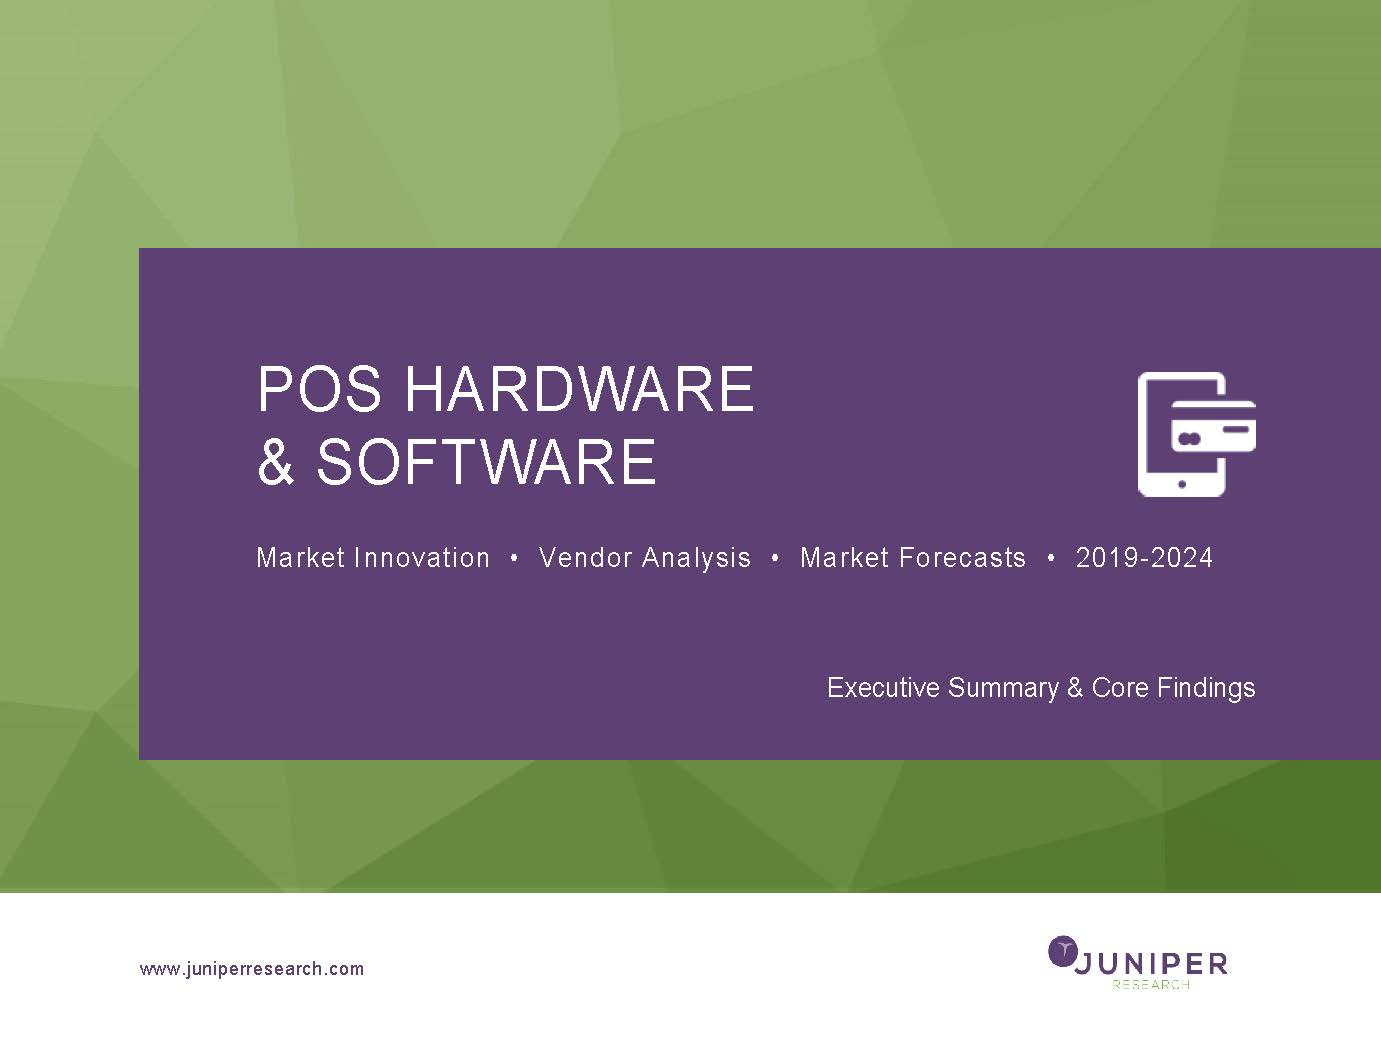 POS Hardware & Software - Executive Summary & Key Findings 2019-2024